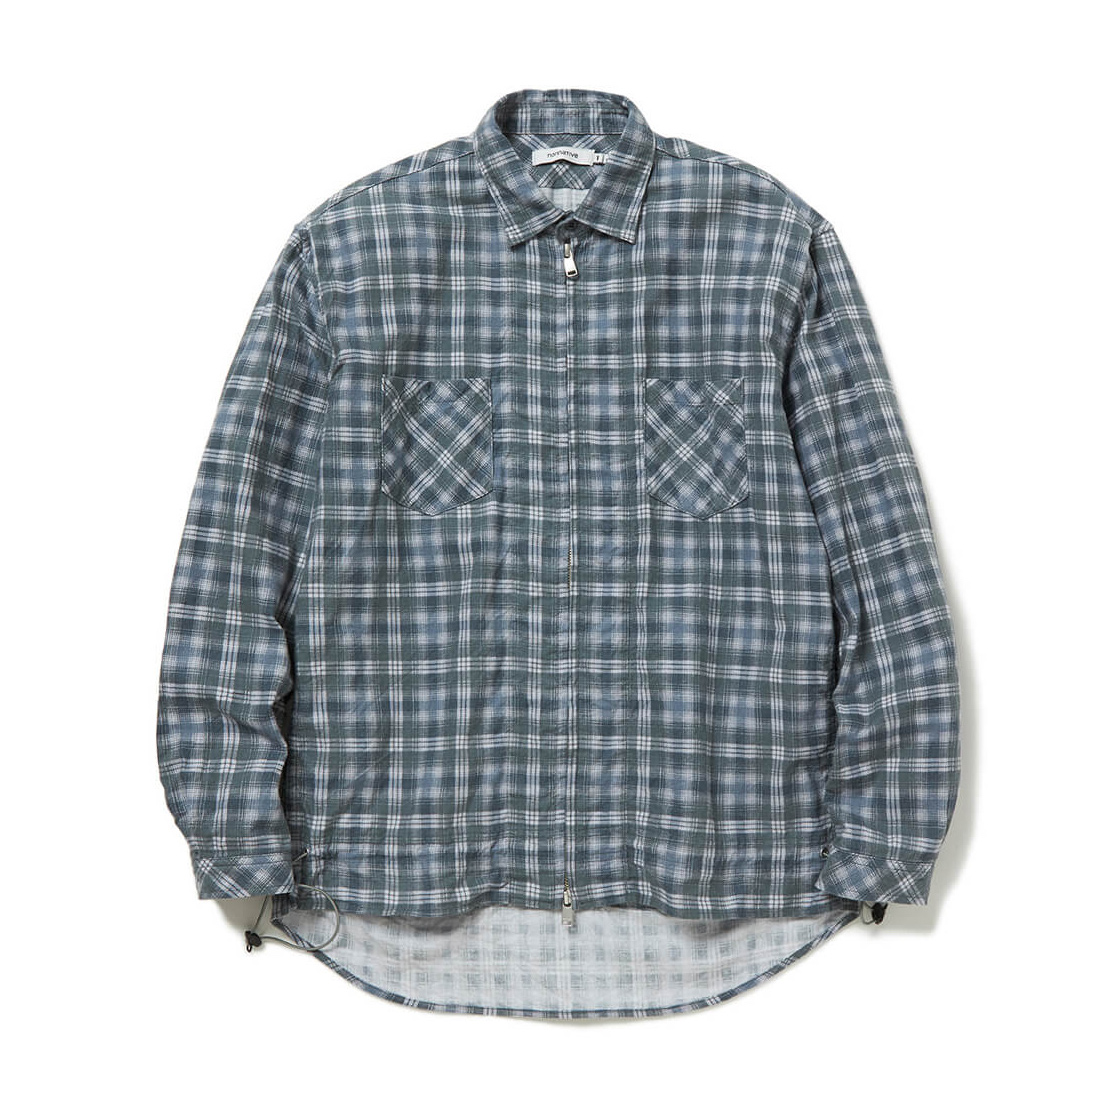 nonnative / WORKER SHIRT JACKET COTTON TWILL PLAID PRINT (Gray)